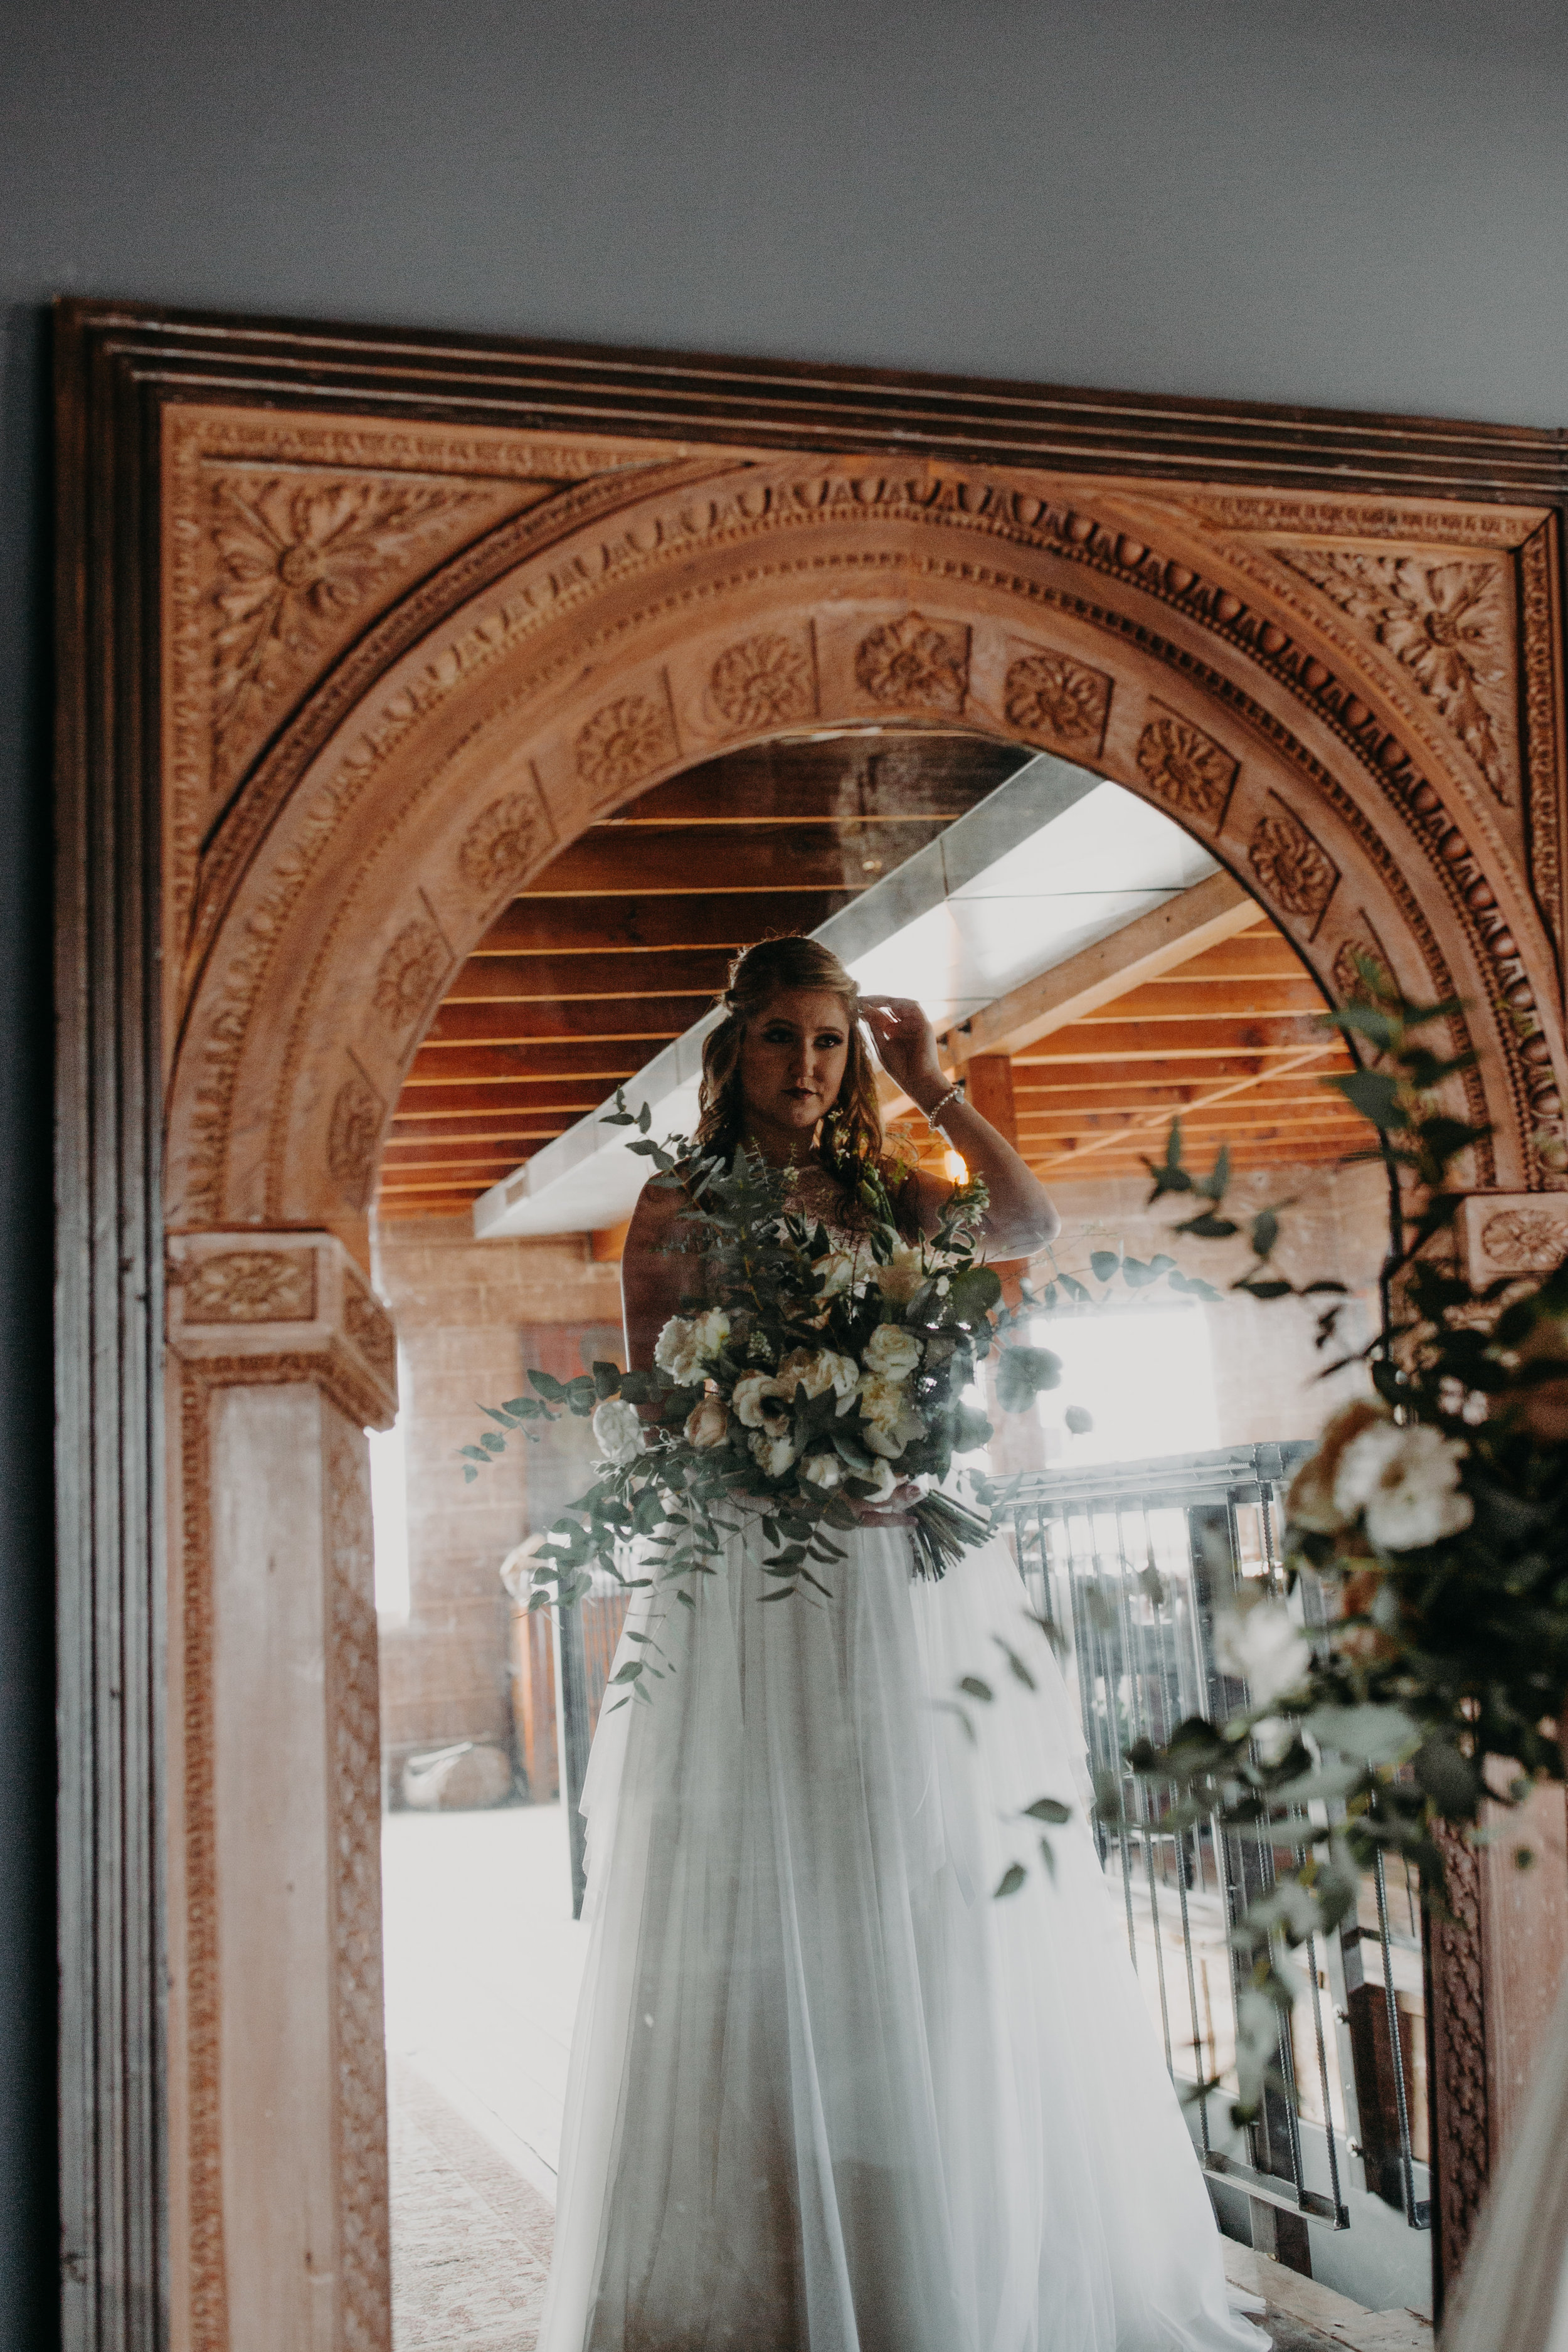 Smoky Hollow Studios Wedding Anne & Lewis Emily Magers Photography-148.jpg